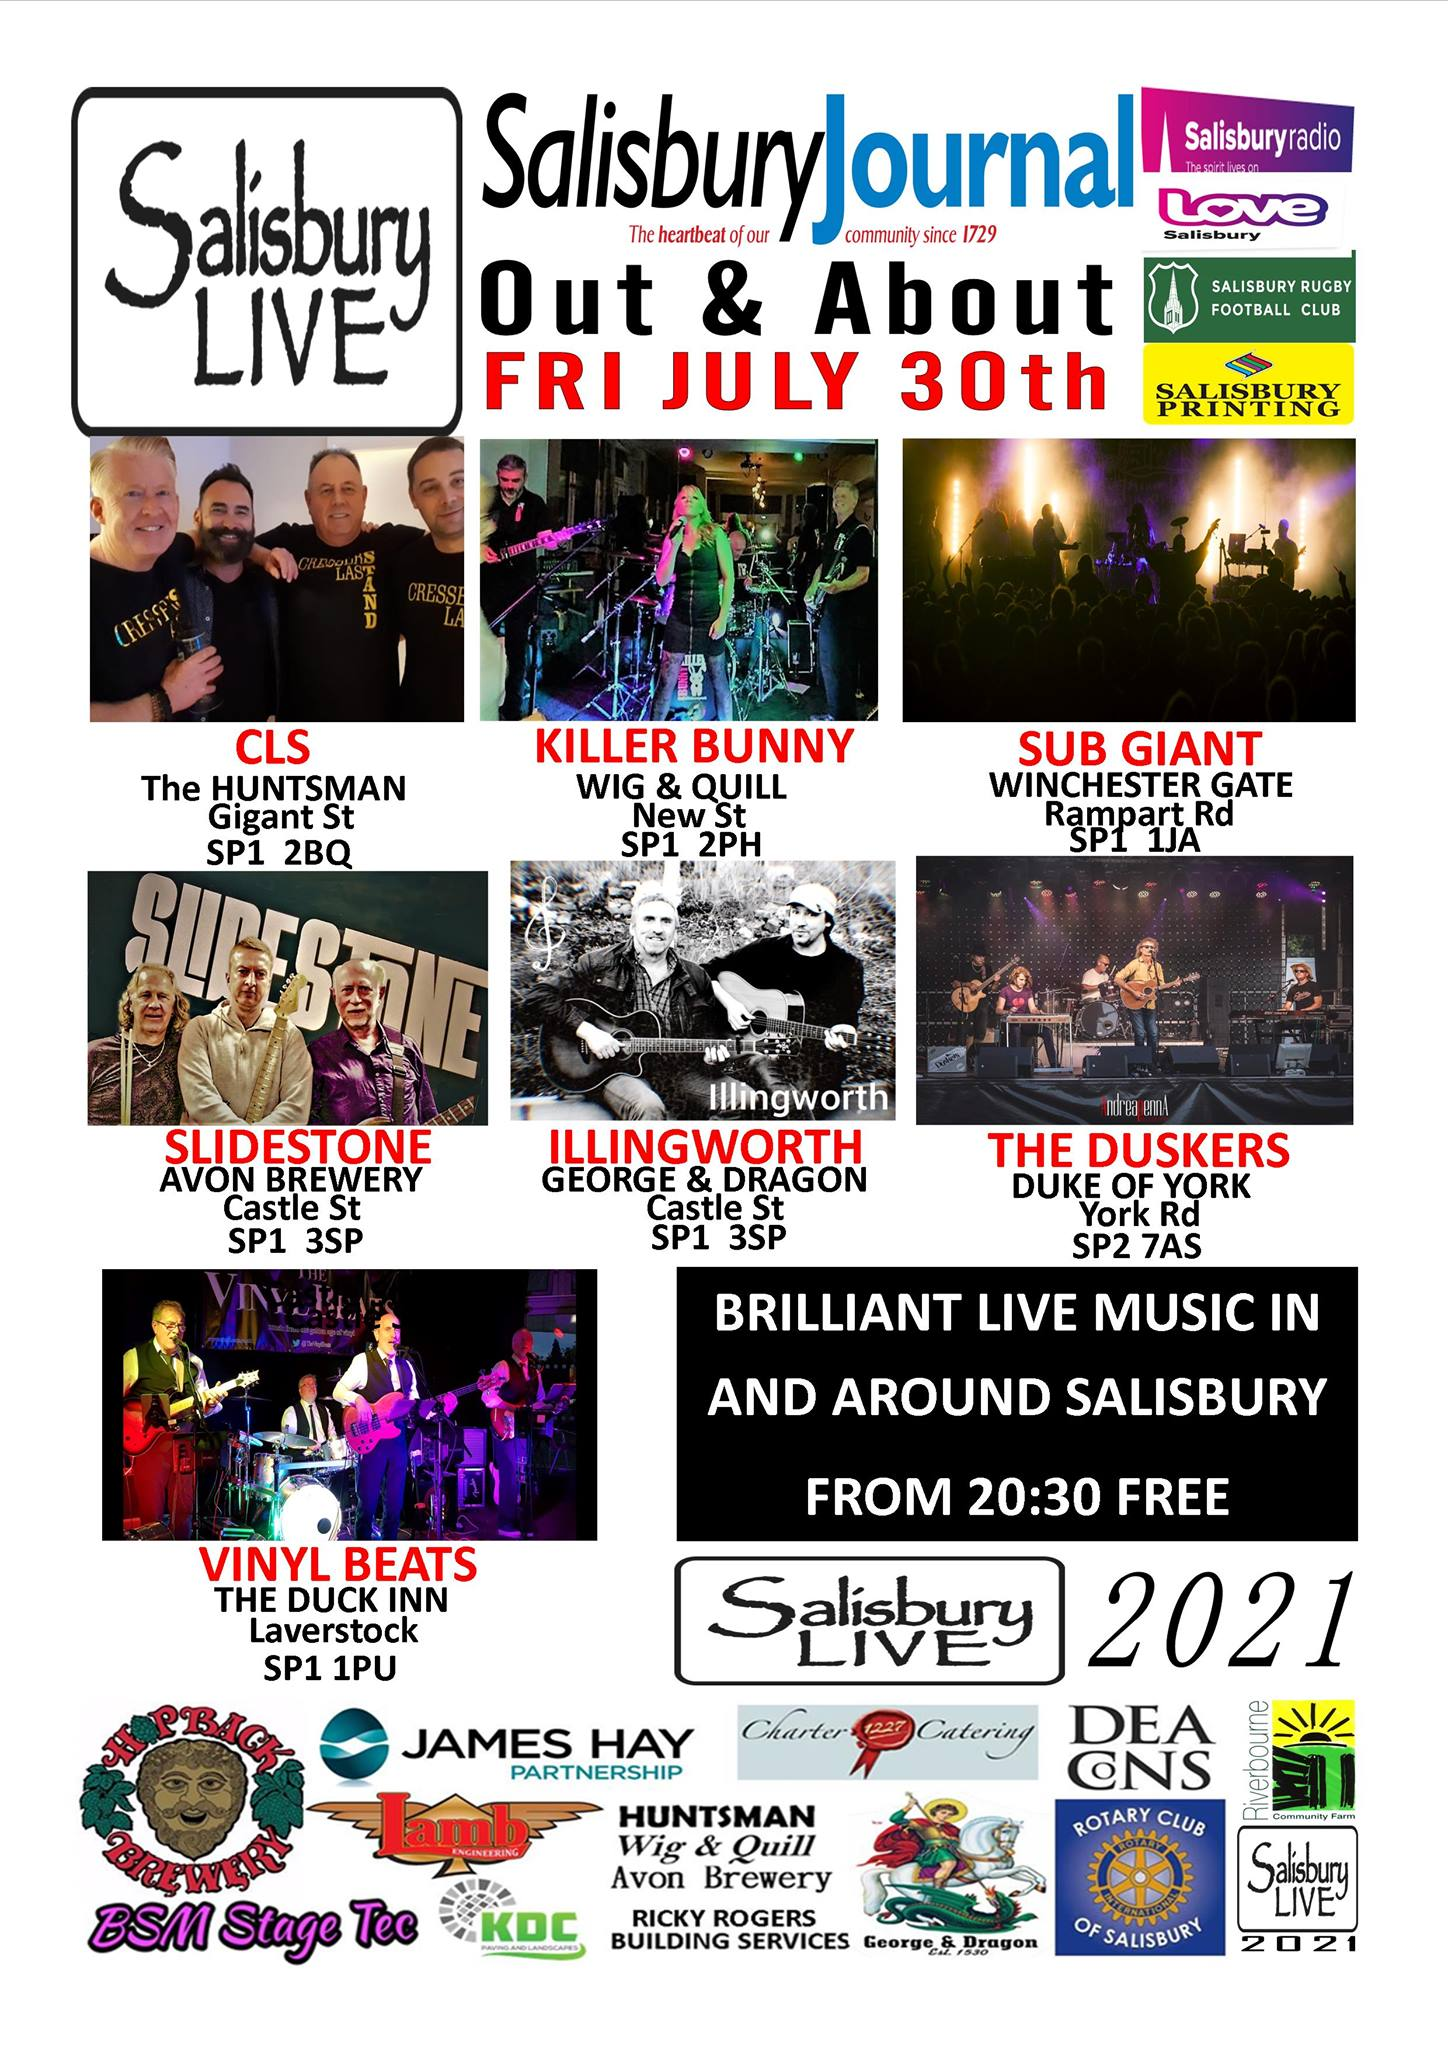 Salisbury Live 'Out and About': SUBGIANT